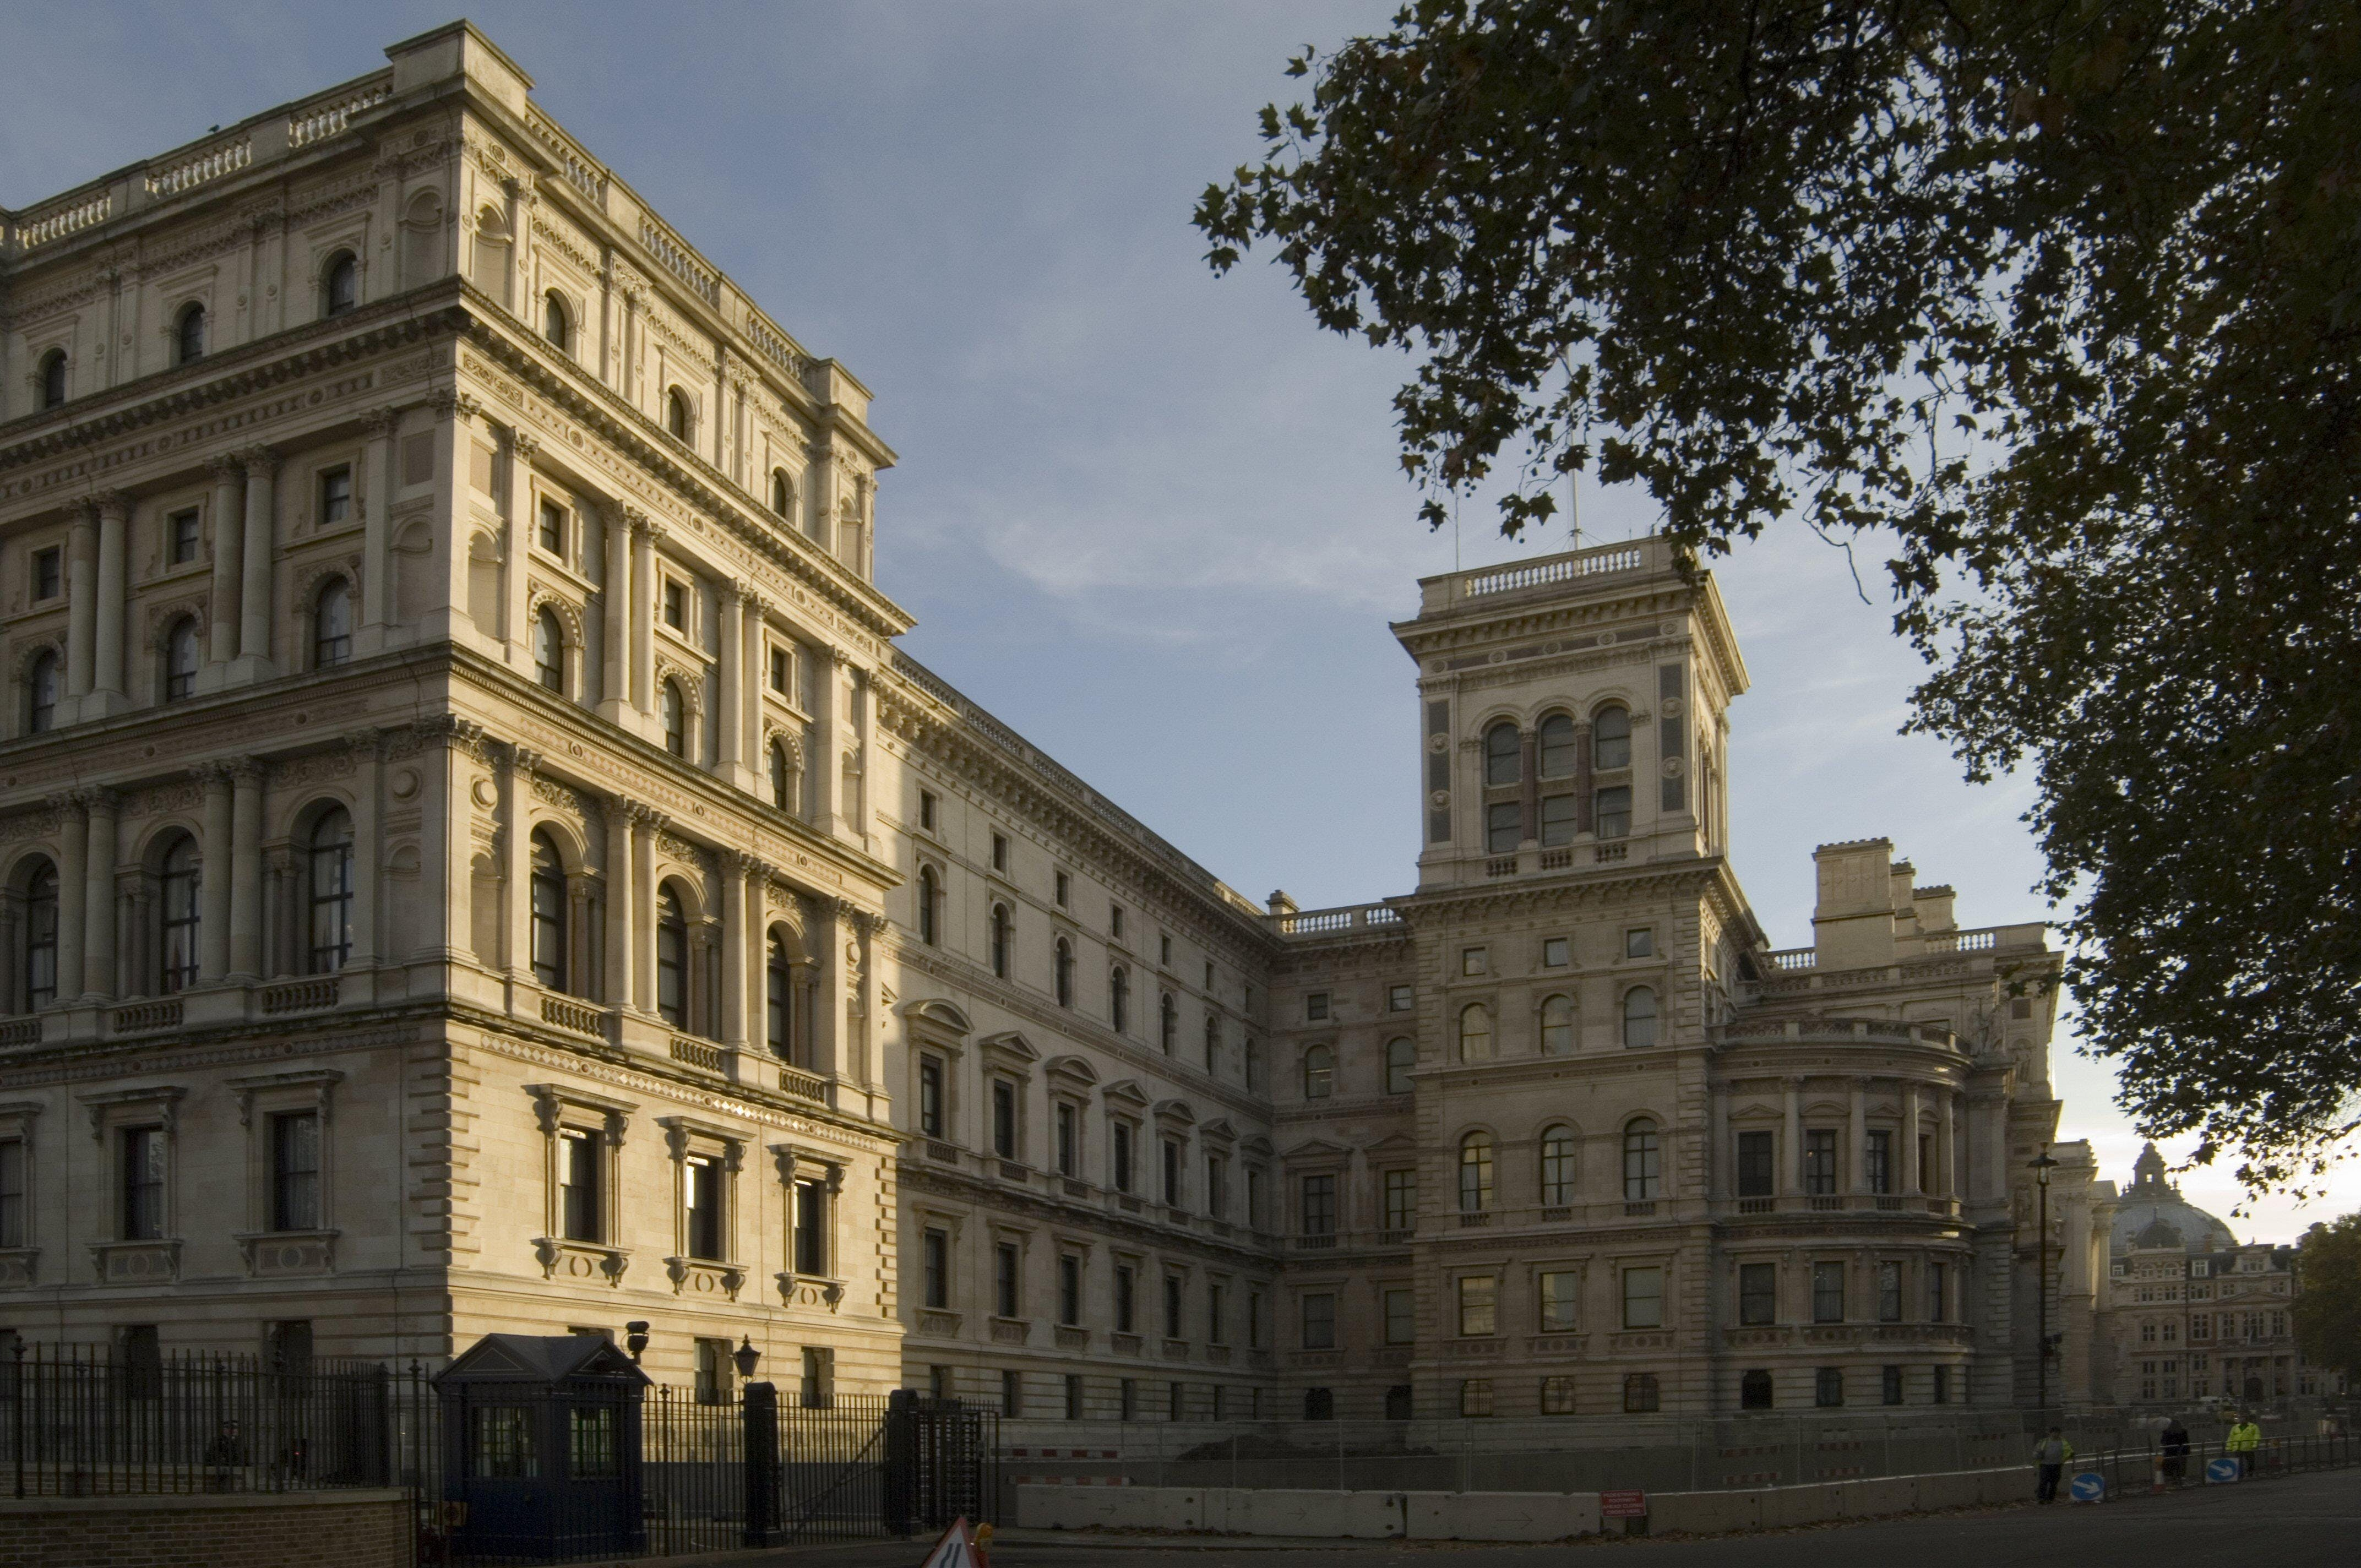 LFA: Foreign and Commonwealth Office tour